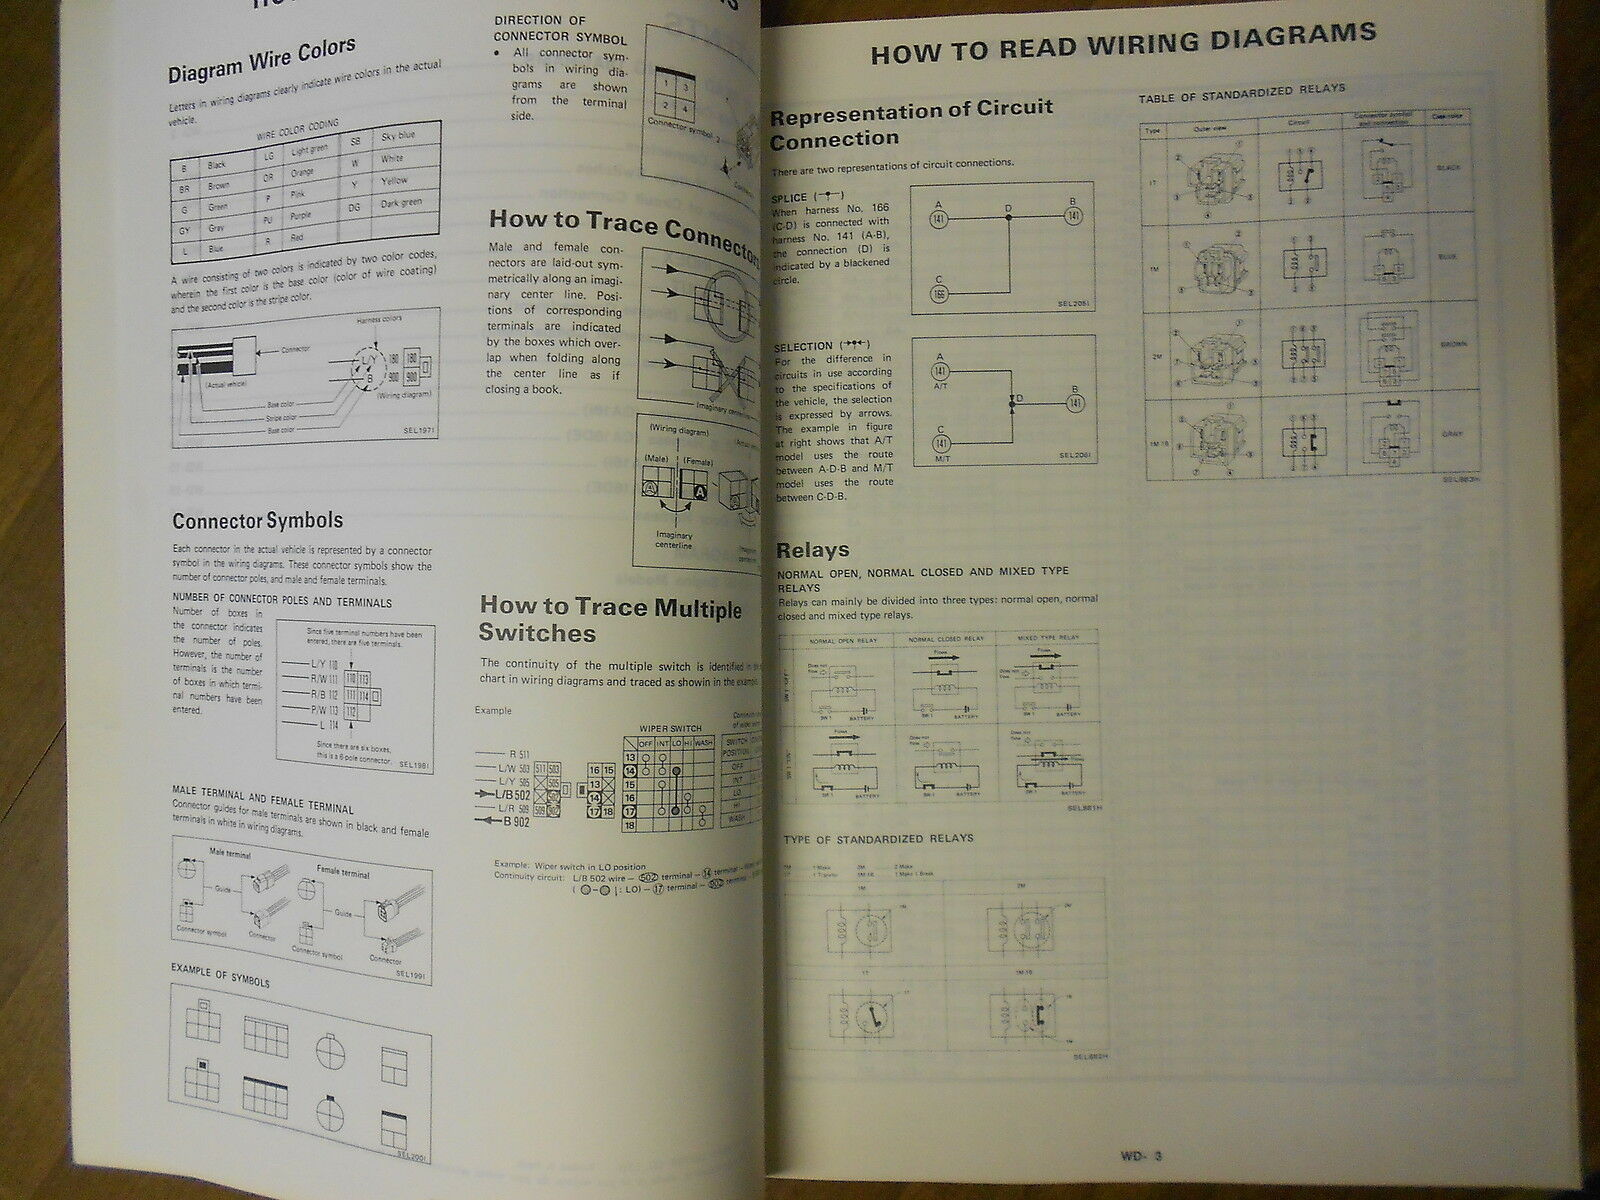 1989 Nissan Pulsar NX Wiring Diagram Service Repair Shop Manual FACTORY FEO 89